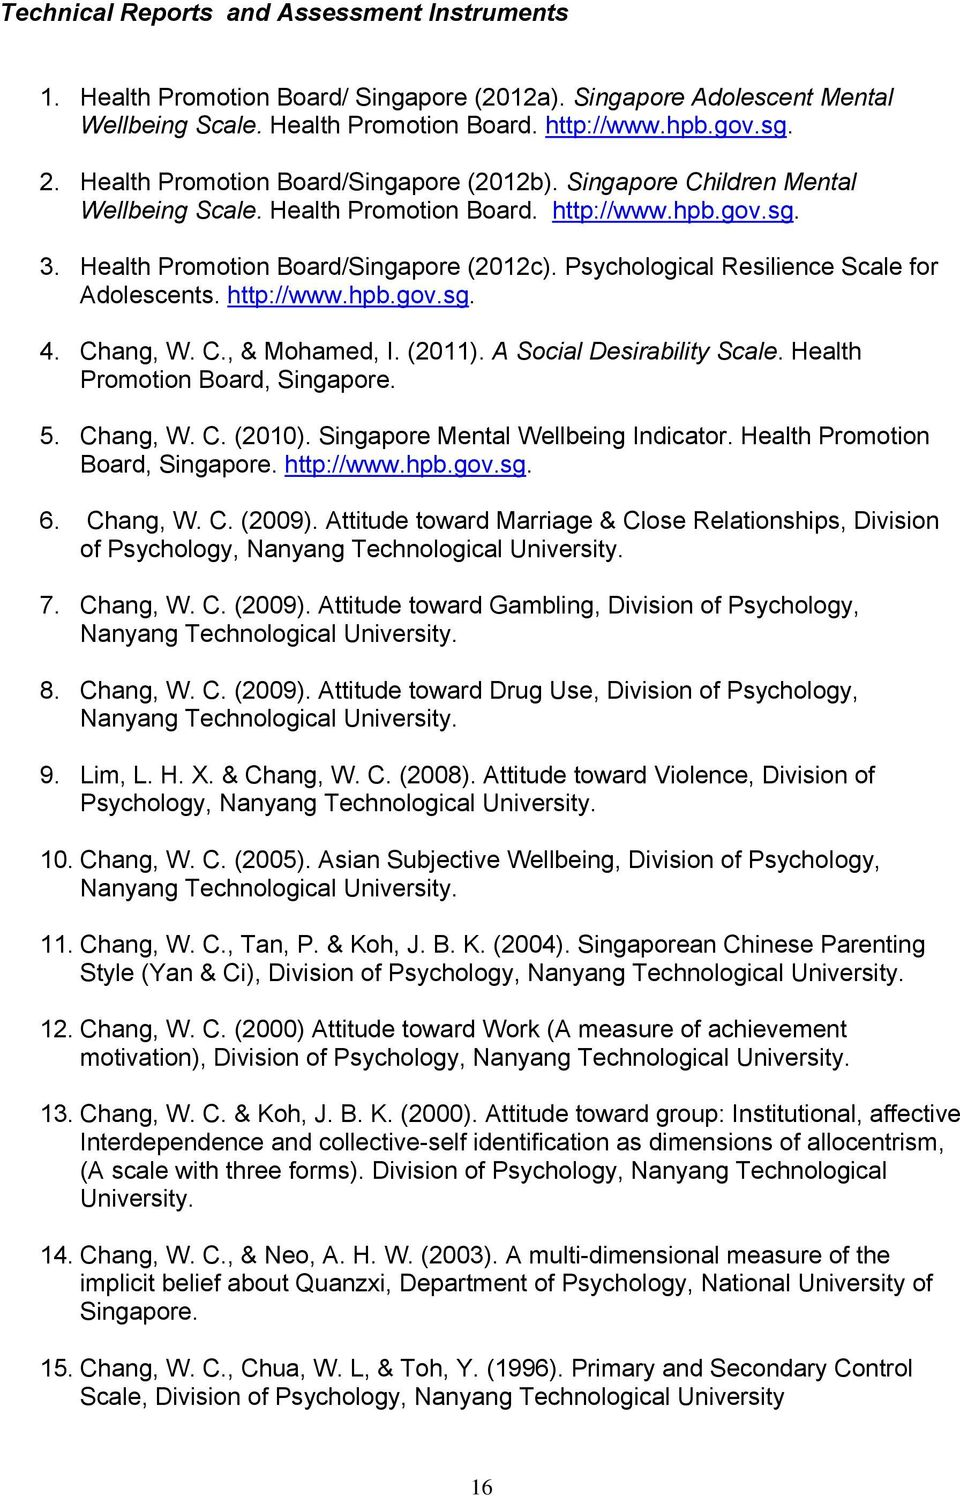 Psychological Resilience Scale for Adolescents. http://www.hpb.gov.sg. 4. Chang, W. C., & Mohamed, I. (2011). A Social Desirability Scale. Health Promotion Board, Singapore. 5. Chang, W. C. (2010).